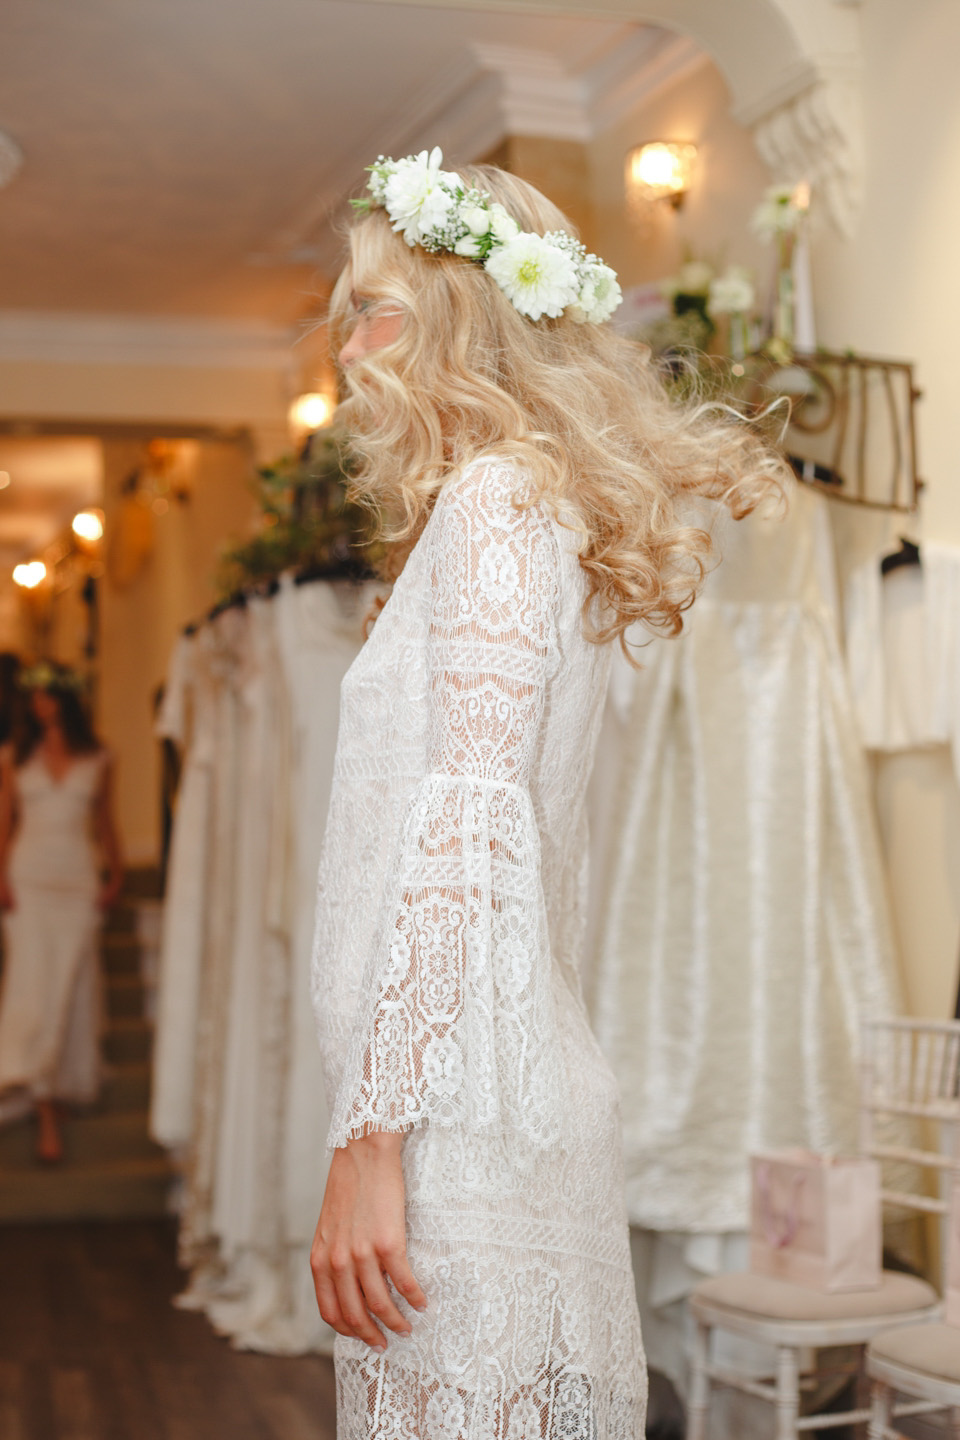 Claire Pettibone's 'Romantique' Collection of Bridal Gowns